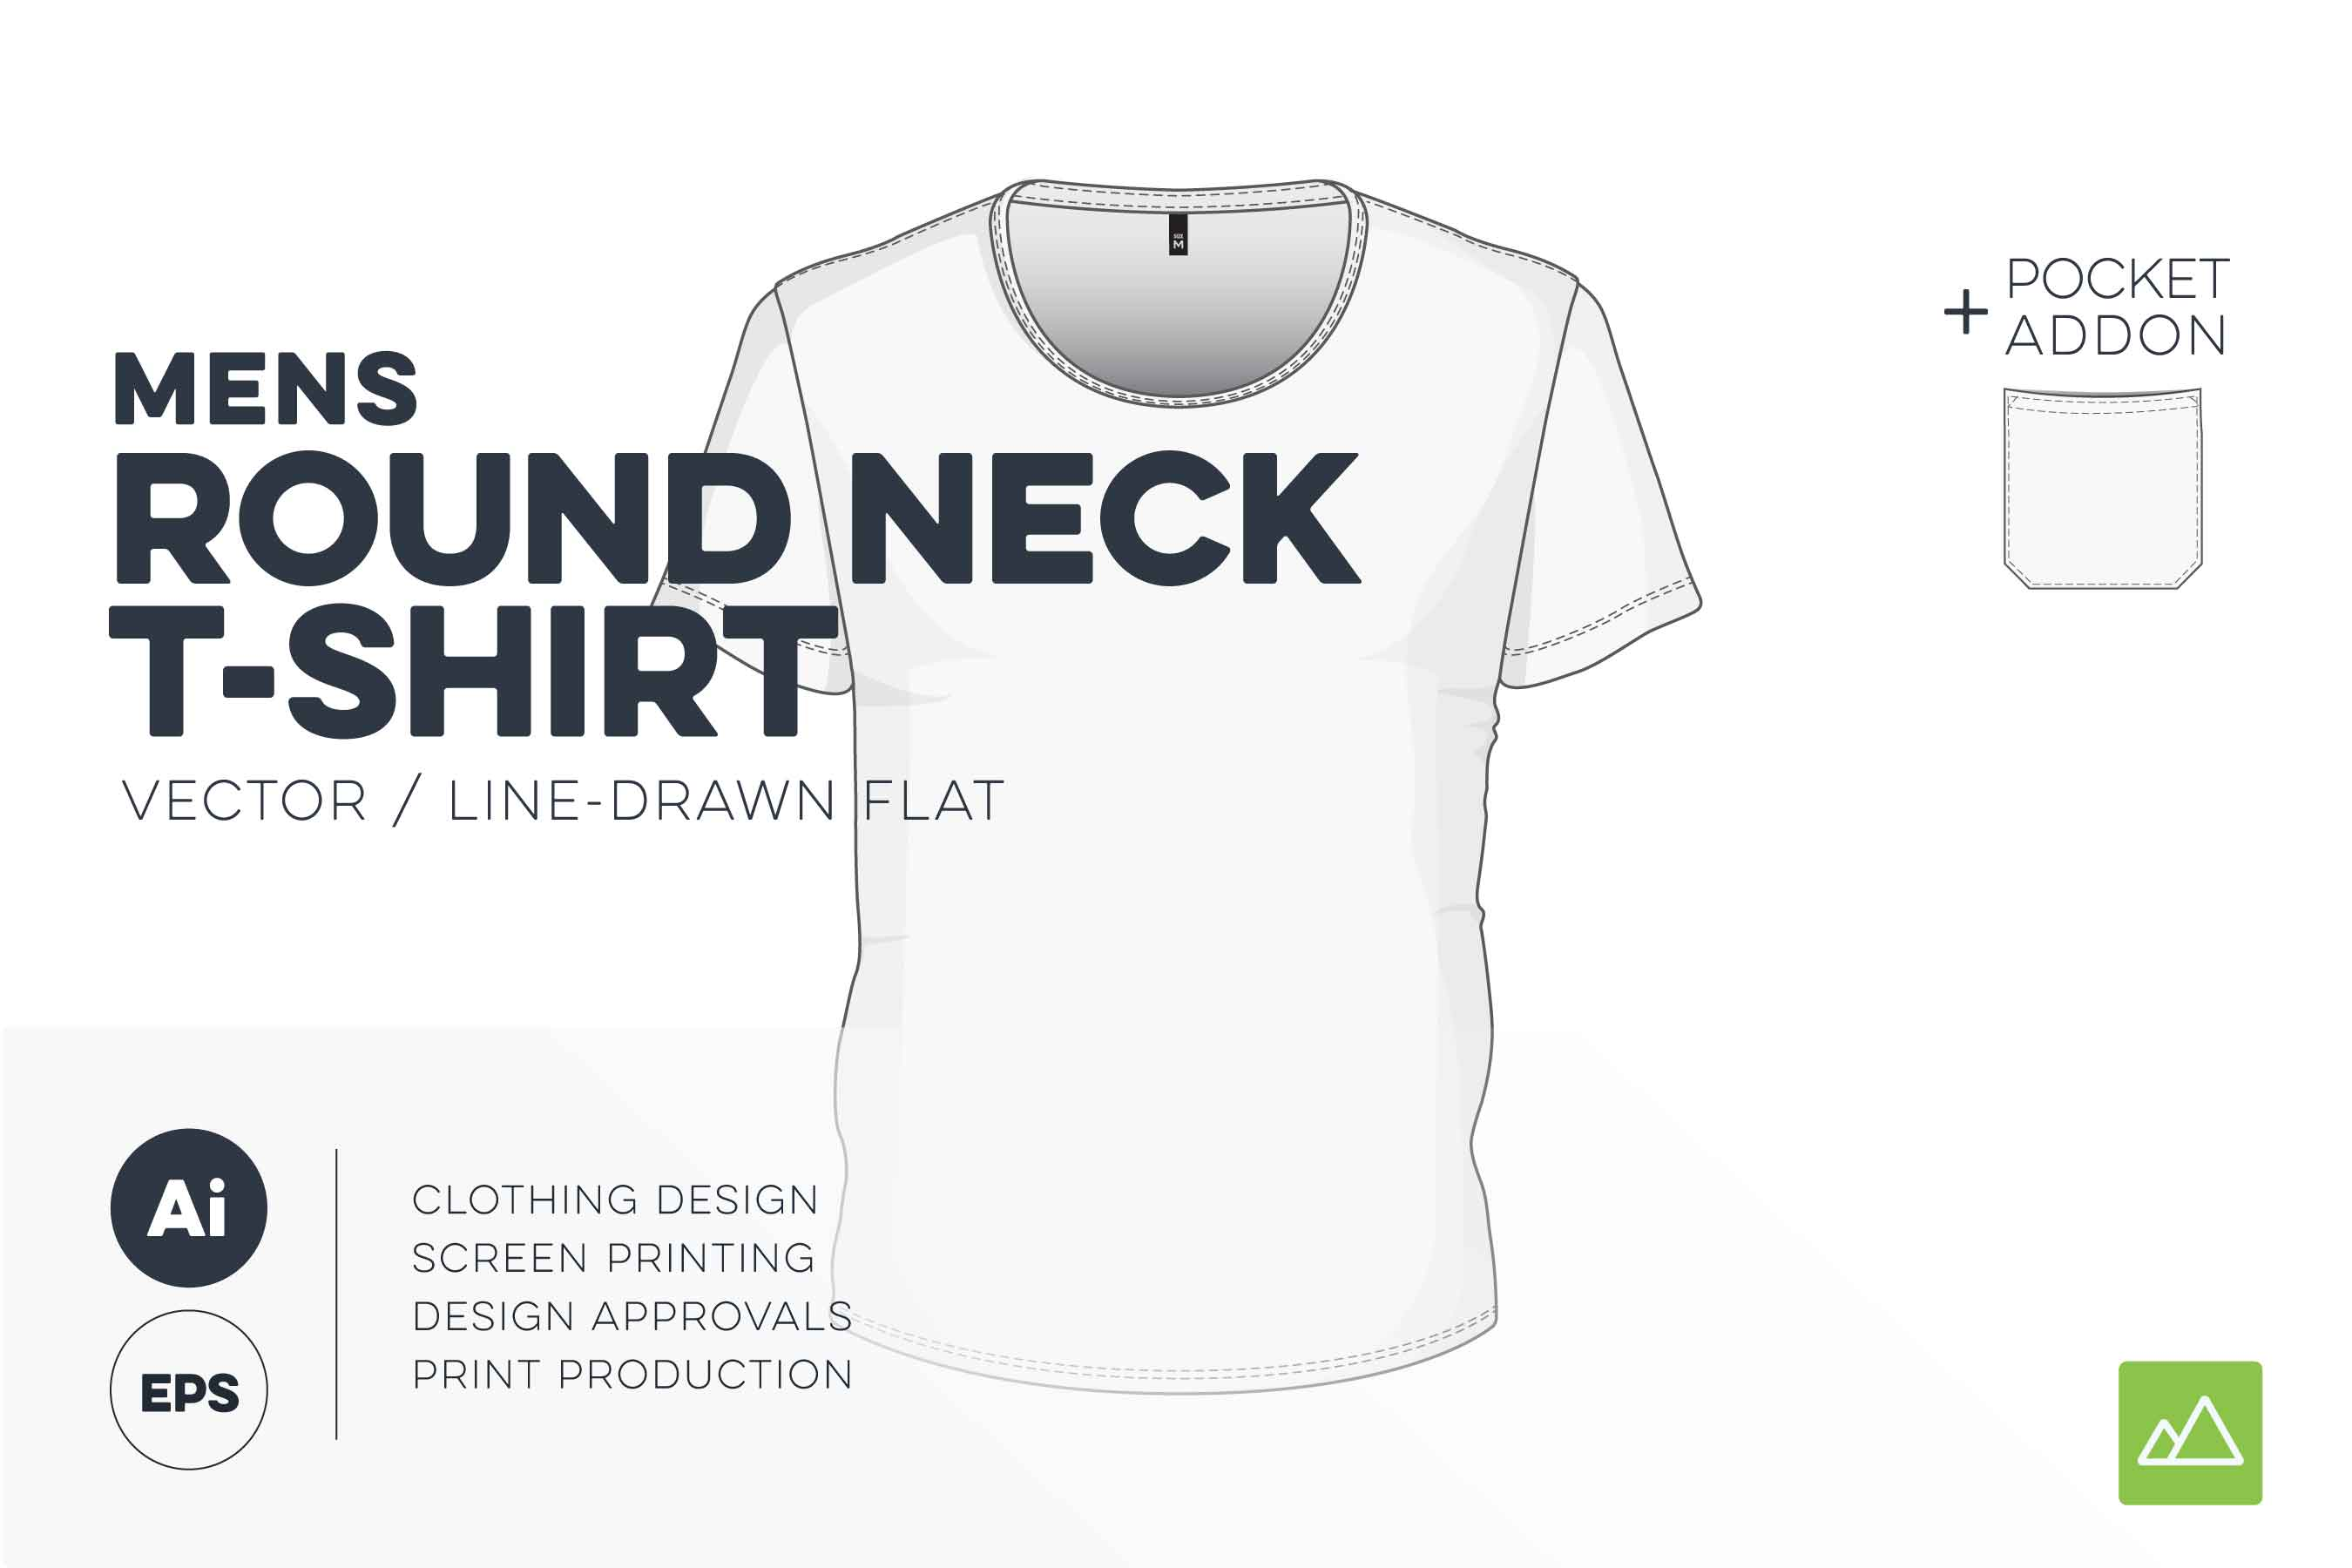 Mens round neck t-shirt template vector pack